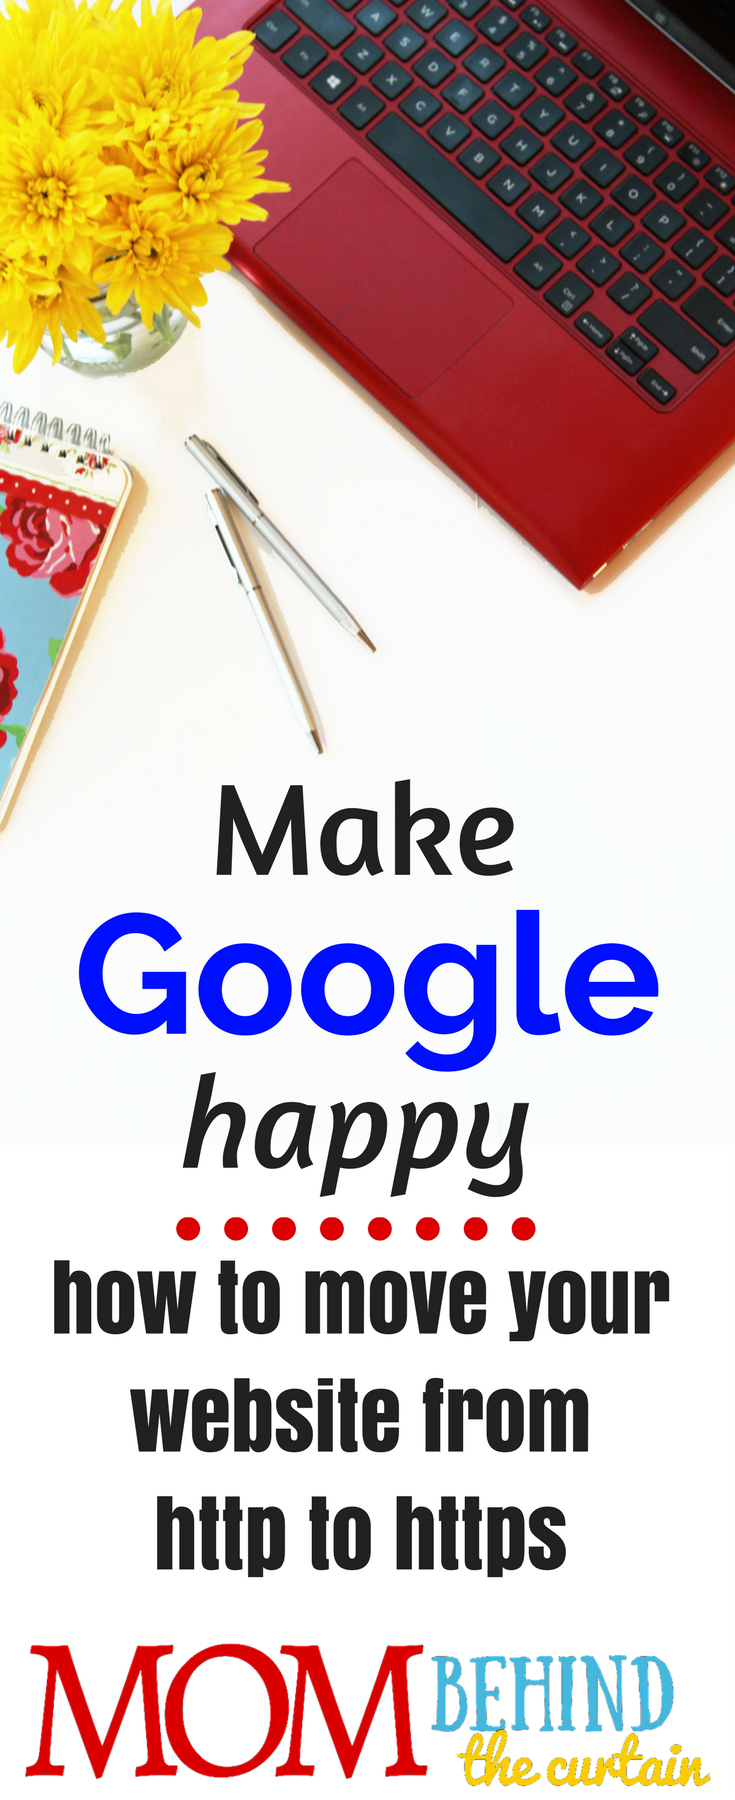 Blogging on WordPress? How to make Google happy. How to move your website from http to https. Why you need it (not just because it will make Google happy), how to do it without coding! And how to preserve your SEO.